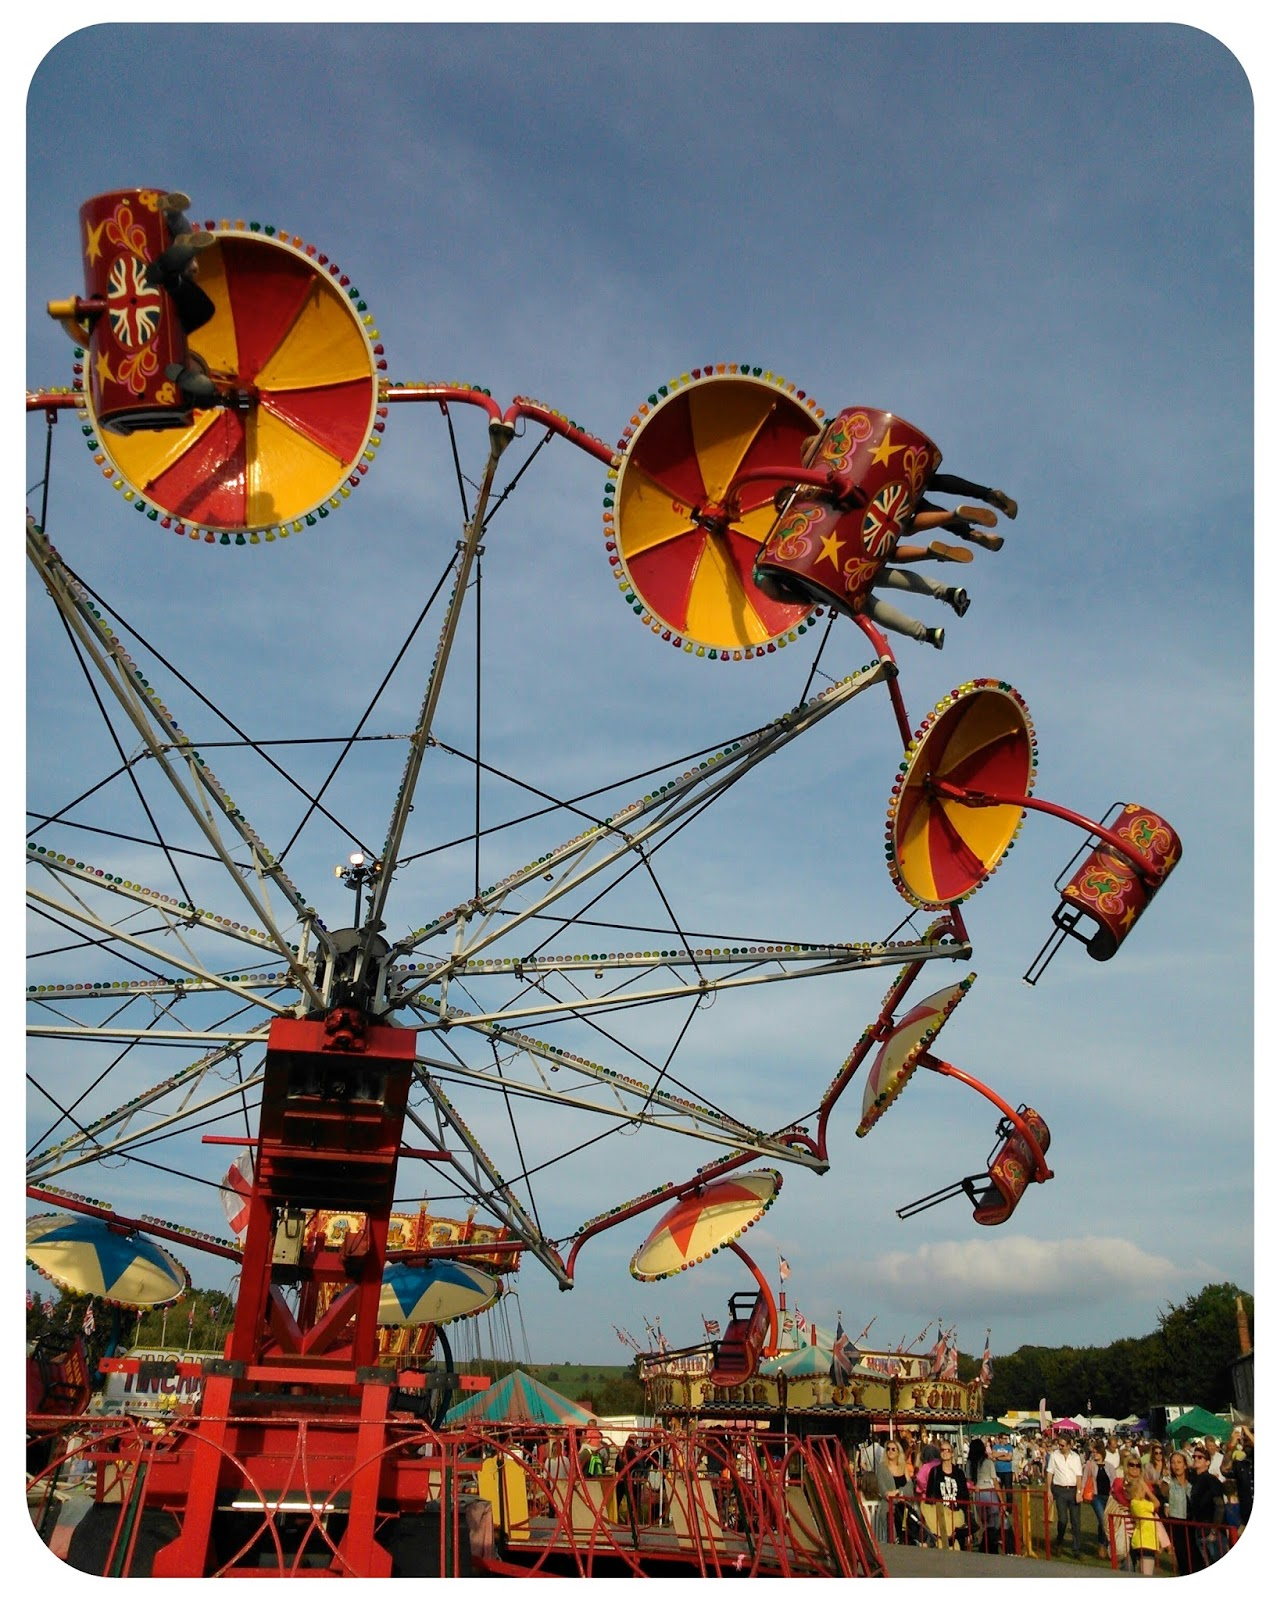 Harris Traditional Funfair